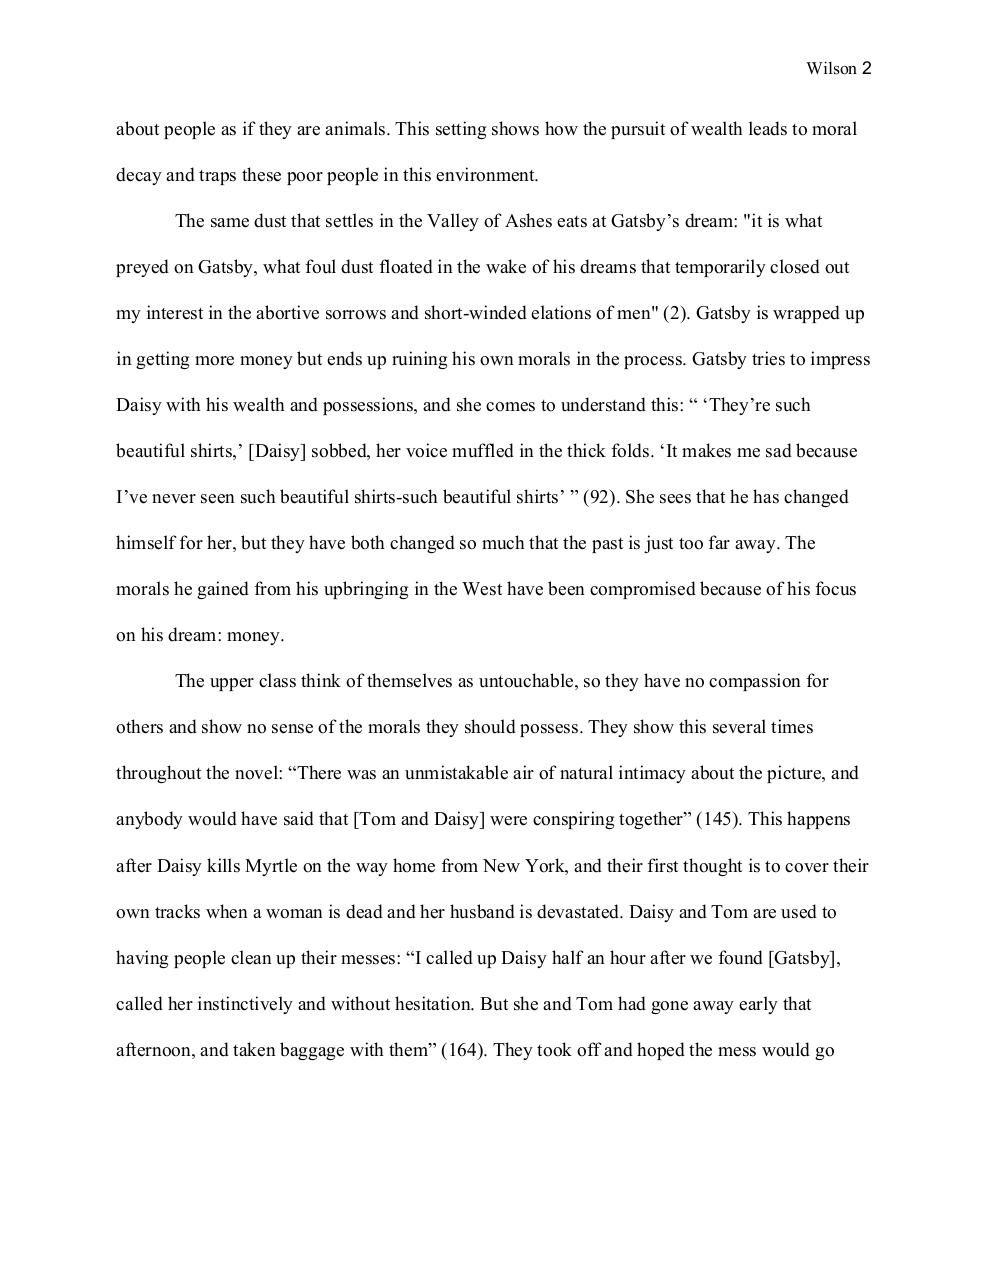 High School Admission Essay Examples Great Gatsby Essaysydney Wilsonpdf  Page  After High School Essay also An Essay On English Language Great Gatsby Essay Sydney Wilson  Pdf Archive Research Papers Examples Essays